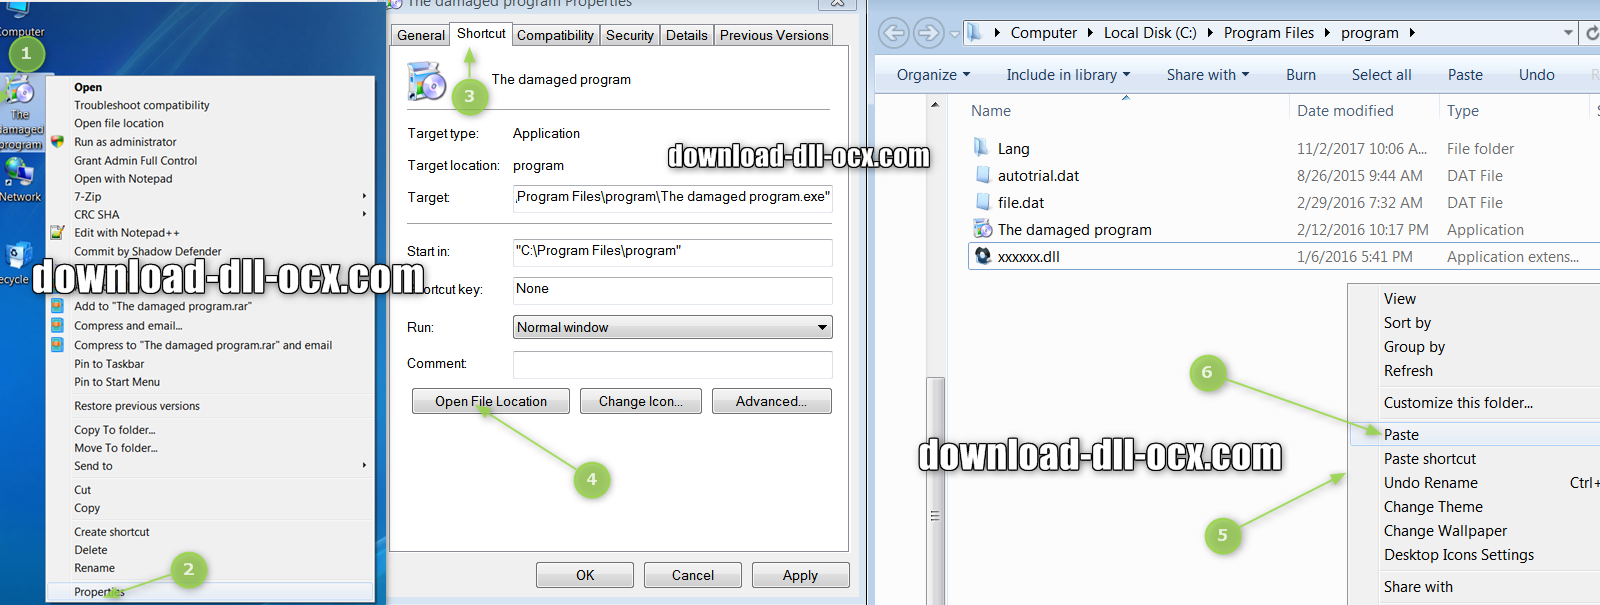 how to install AdobeOwl.dll file? for fix missing